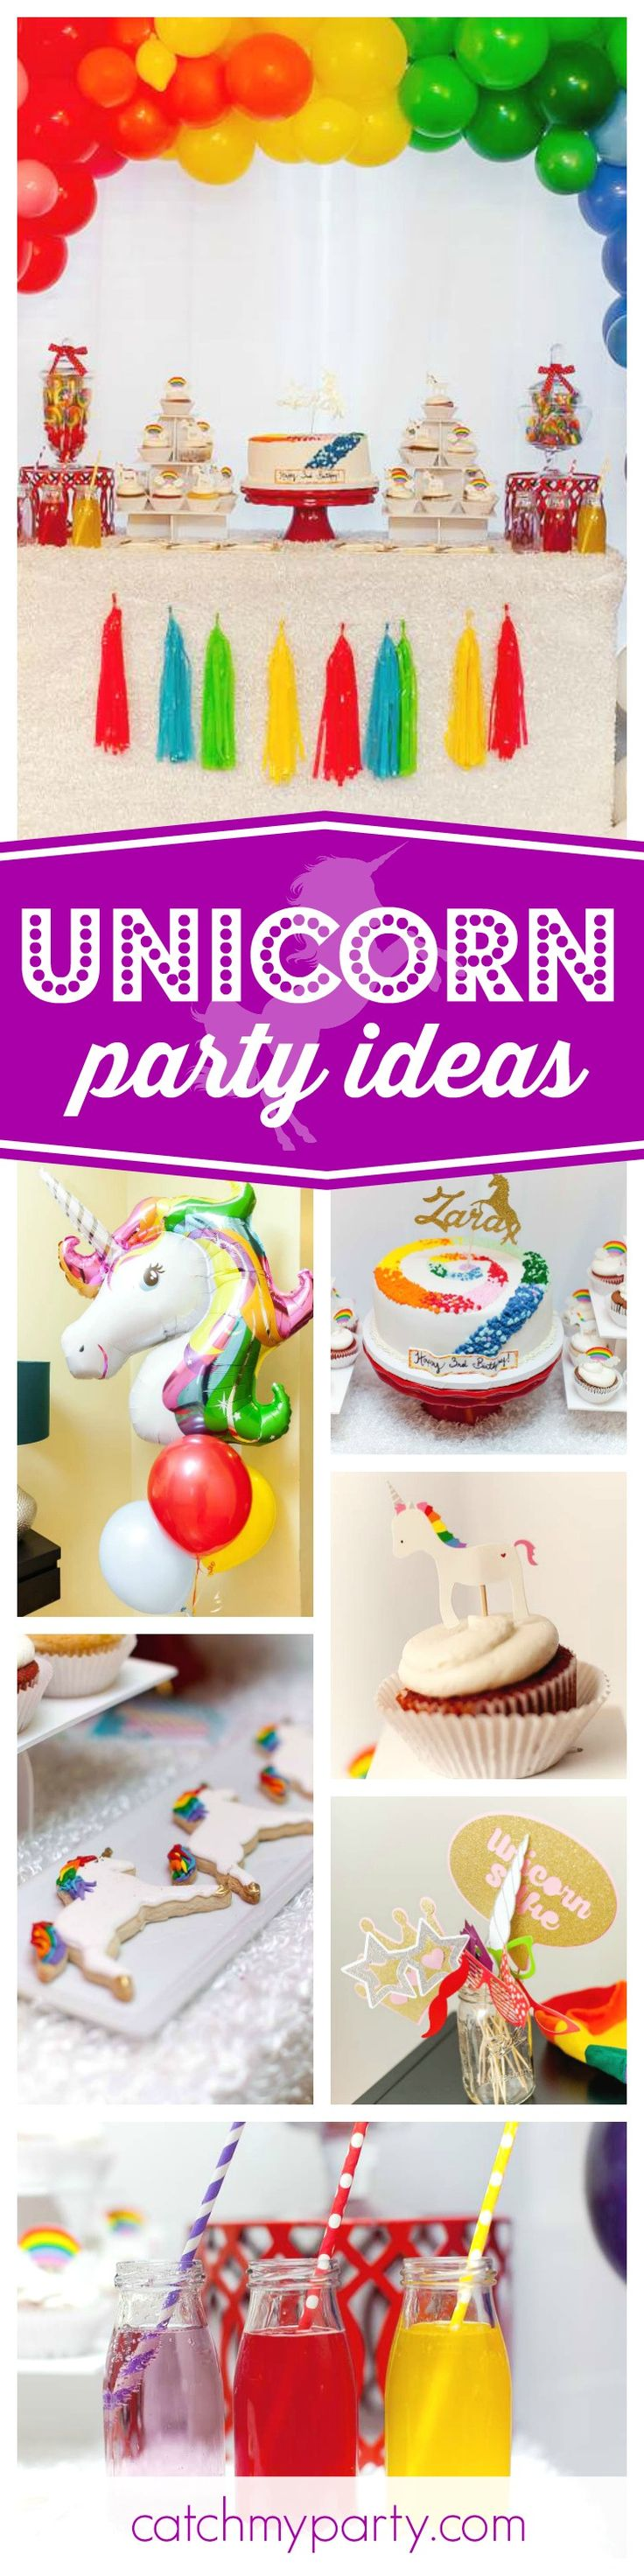 Check out this awesome Rainbows and Unicorns birthday party! The unicorn cookies are adorable!! See more party ideas and share yours at CatchMyParty.com